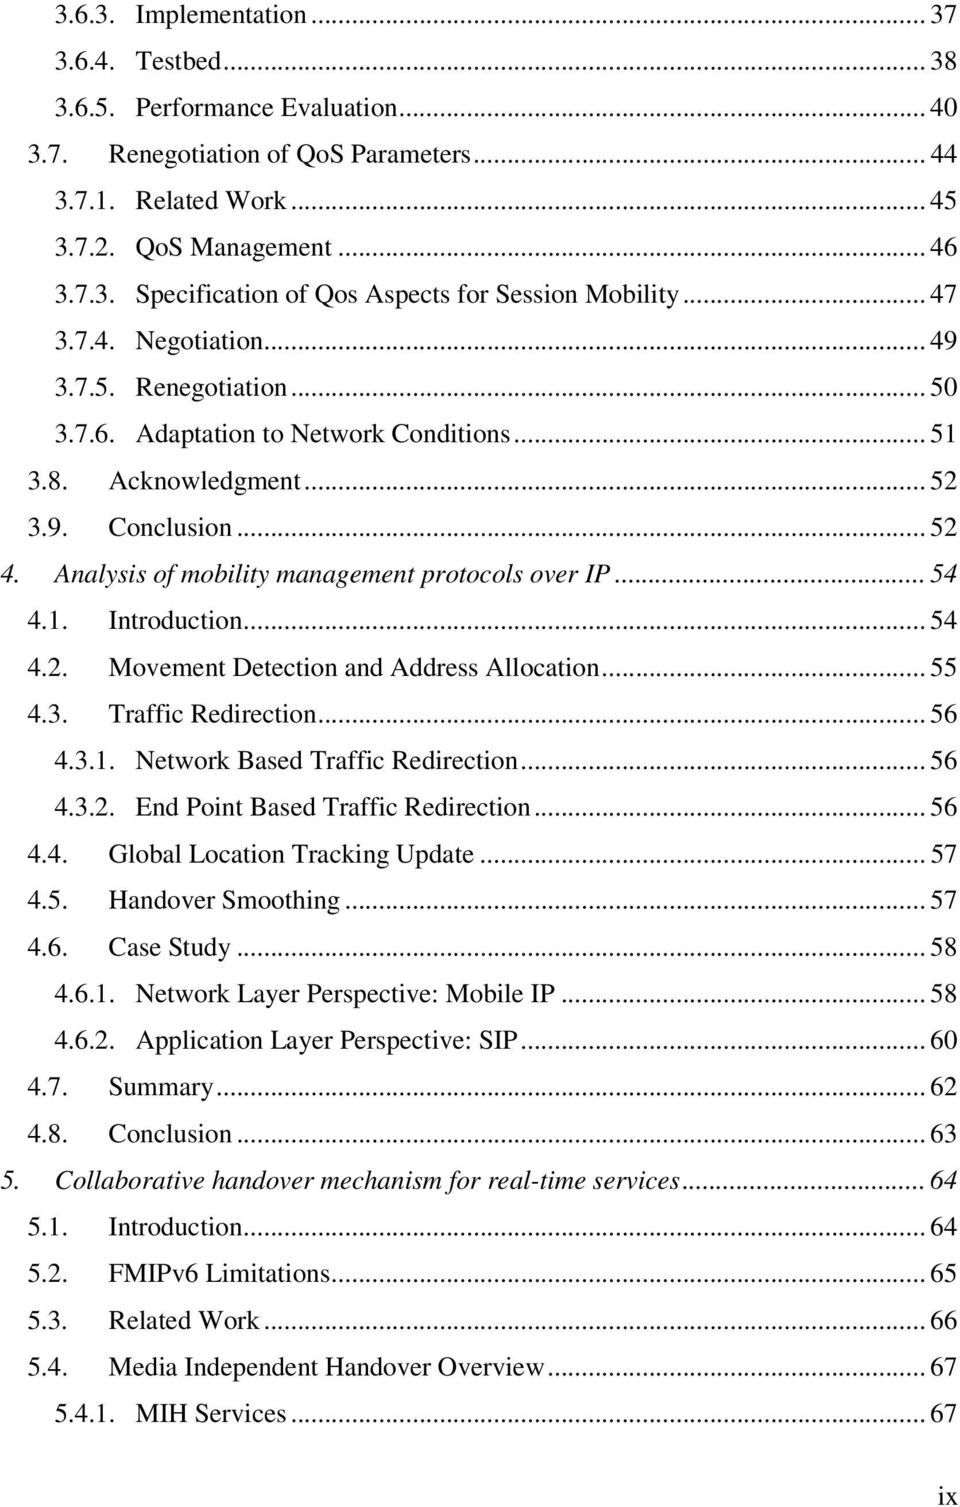 Analysis of mobility management protocols over IP... 54 4.1. Introduction... 54 4.2. Movement Detection and Address Allocation... 55 4.3. Traffic Redirection... 56 4.3.1. Network Based Traffic Redirection.